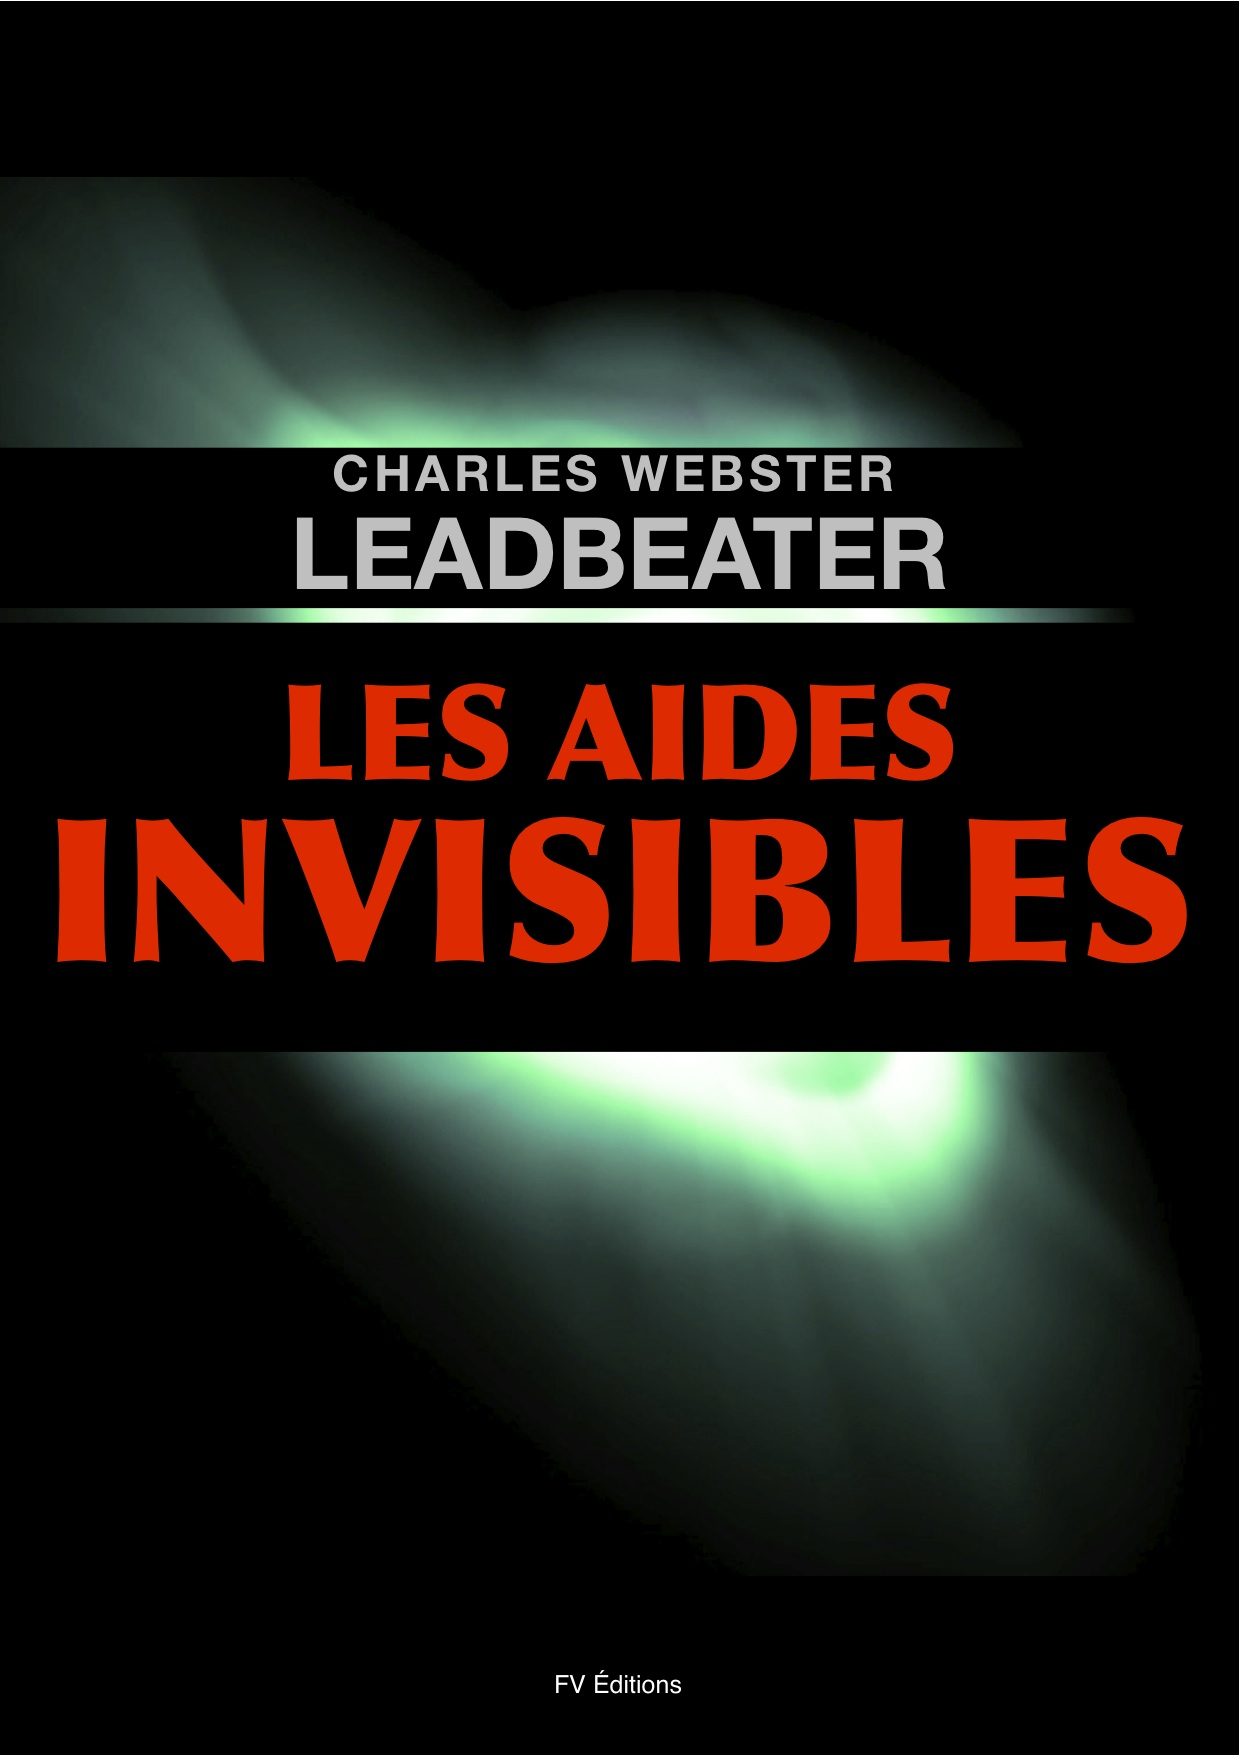 Le Aides Invisibles